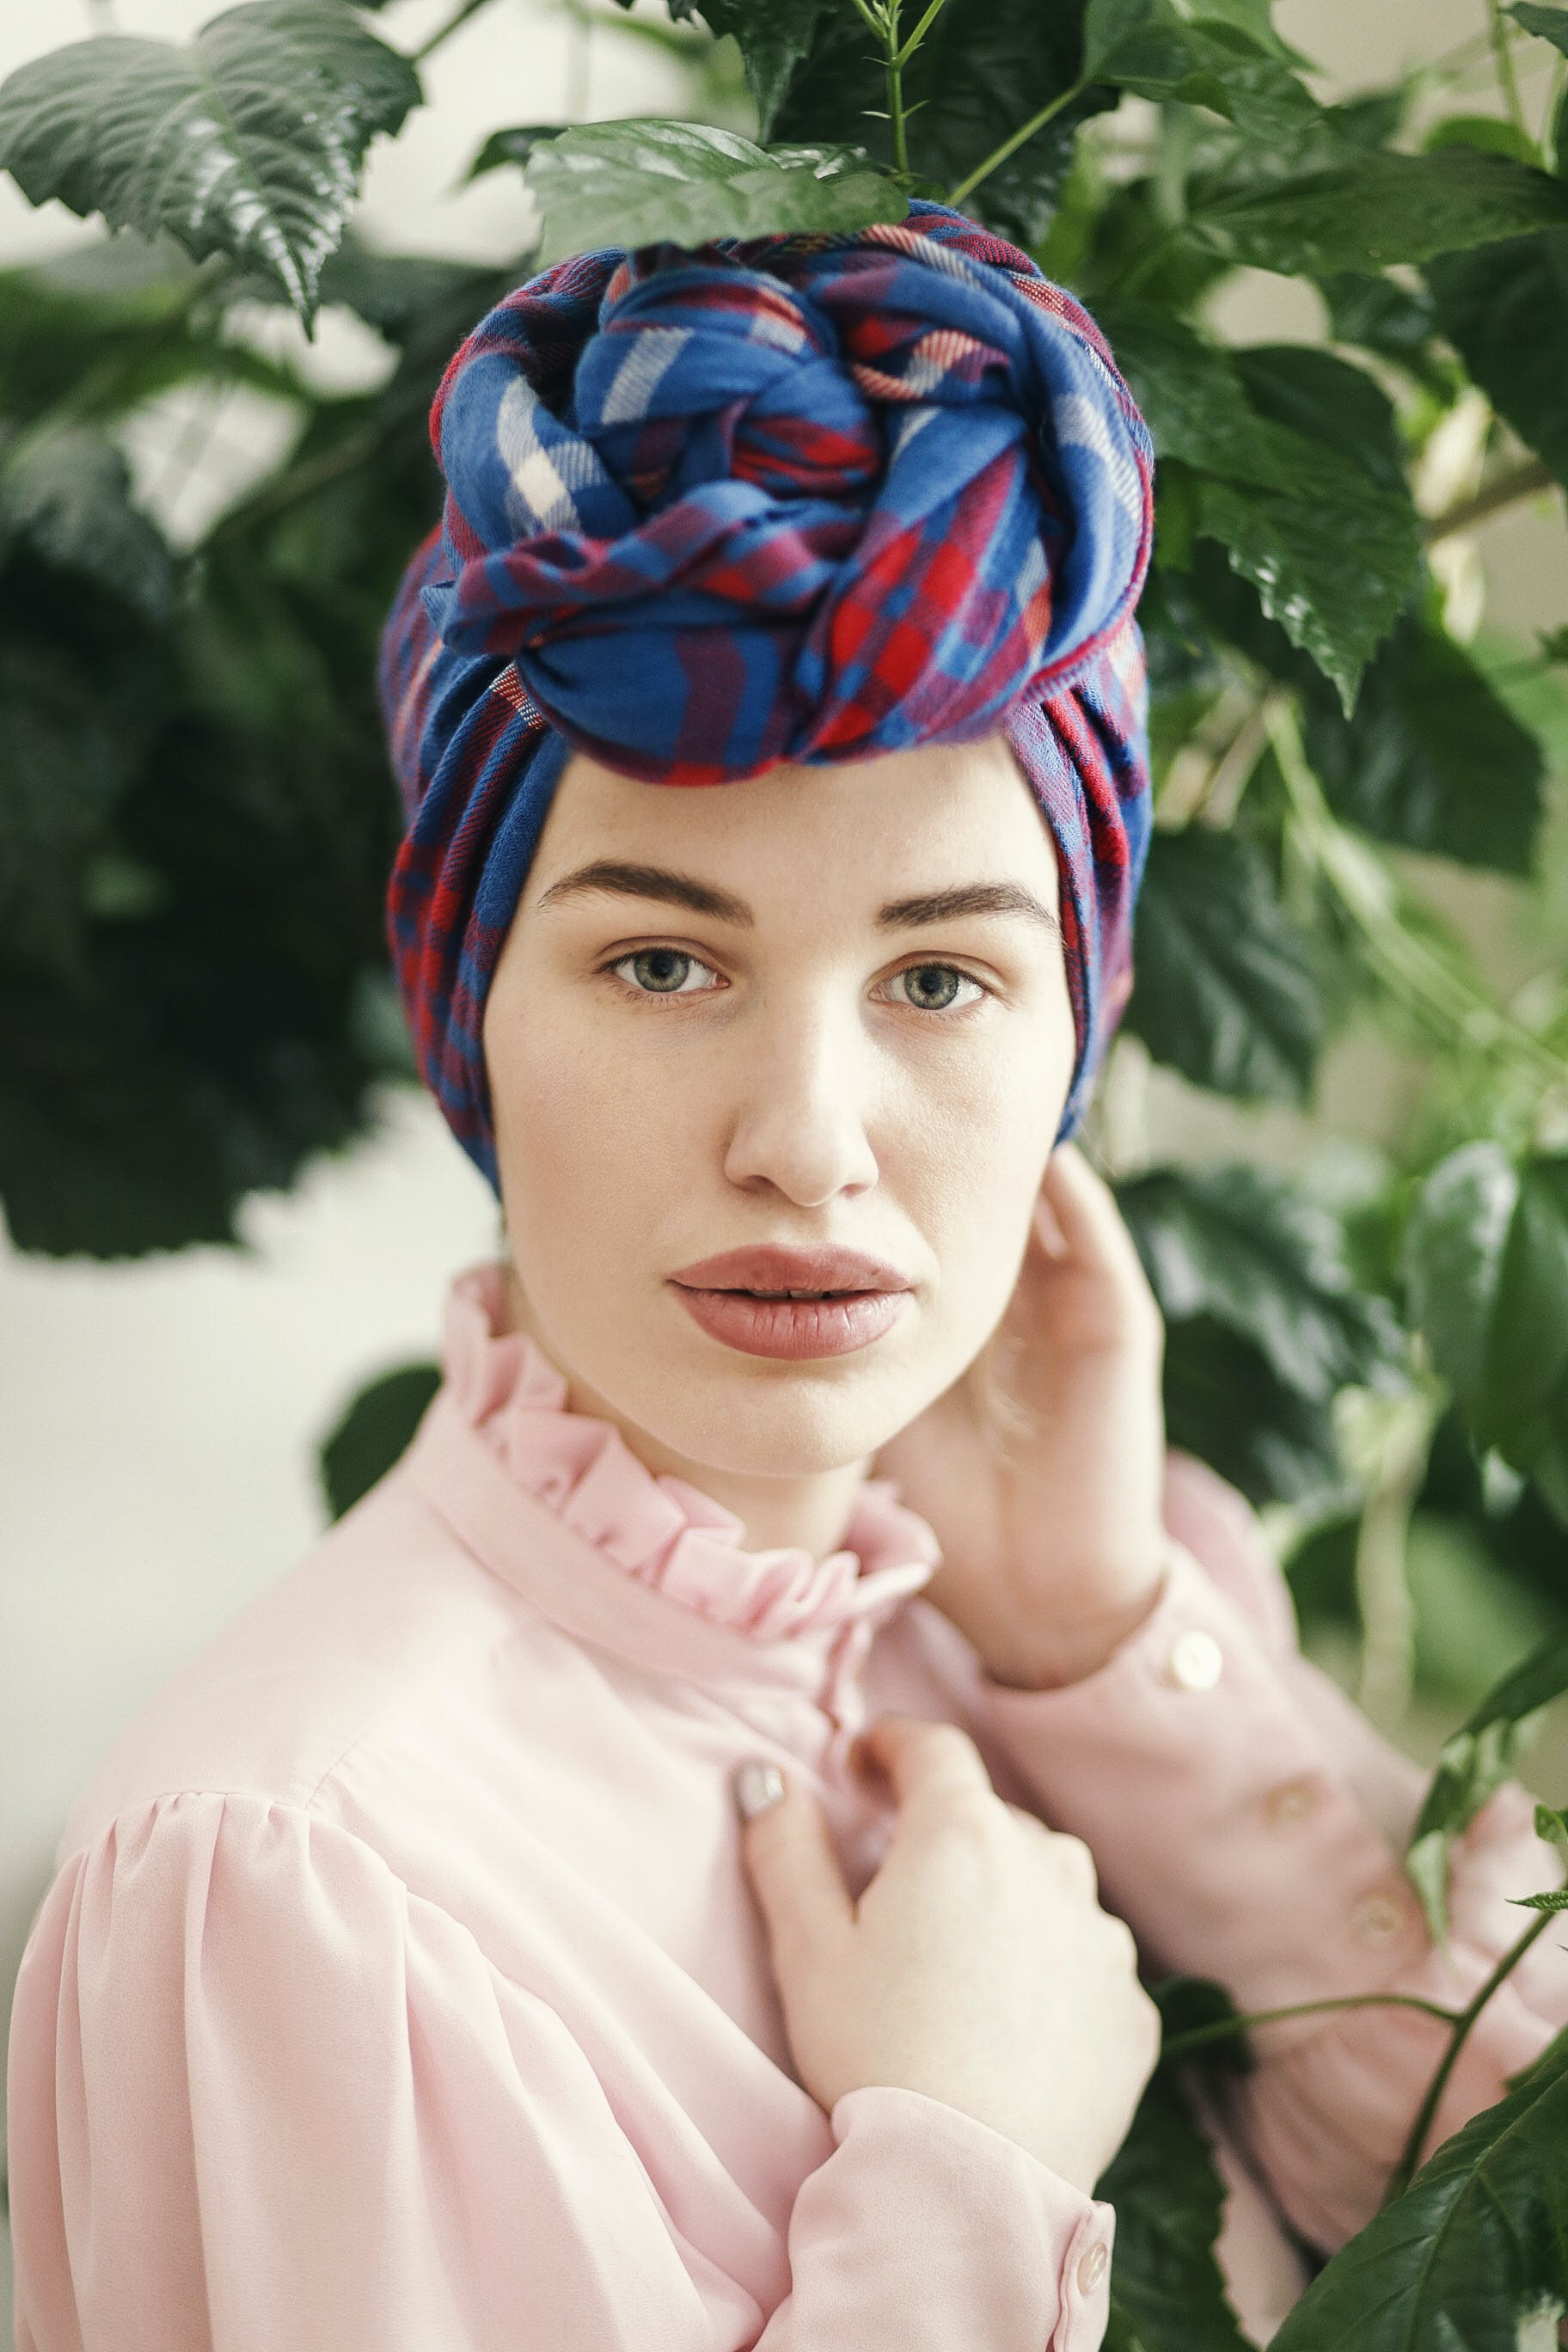 Woman in Pink Long-sleeved Top and Blue and Red Headdress